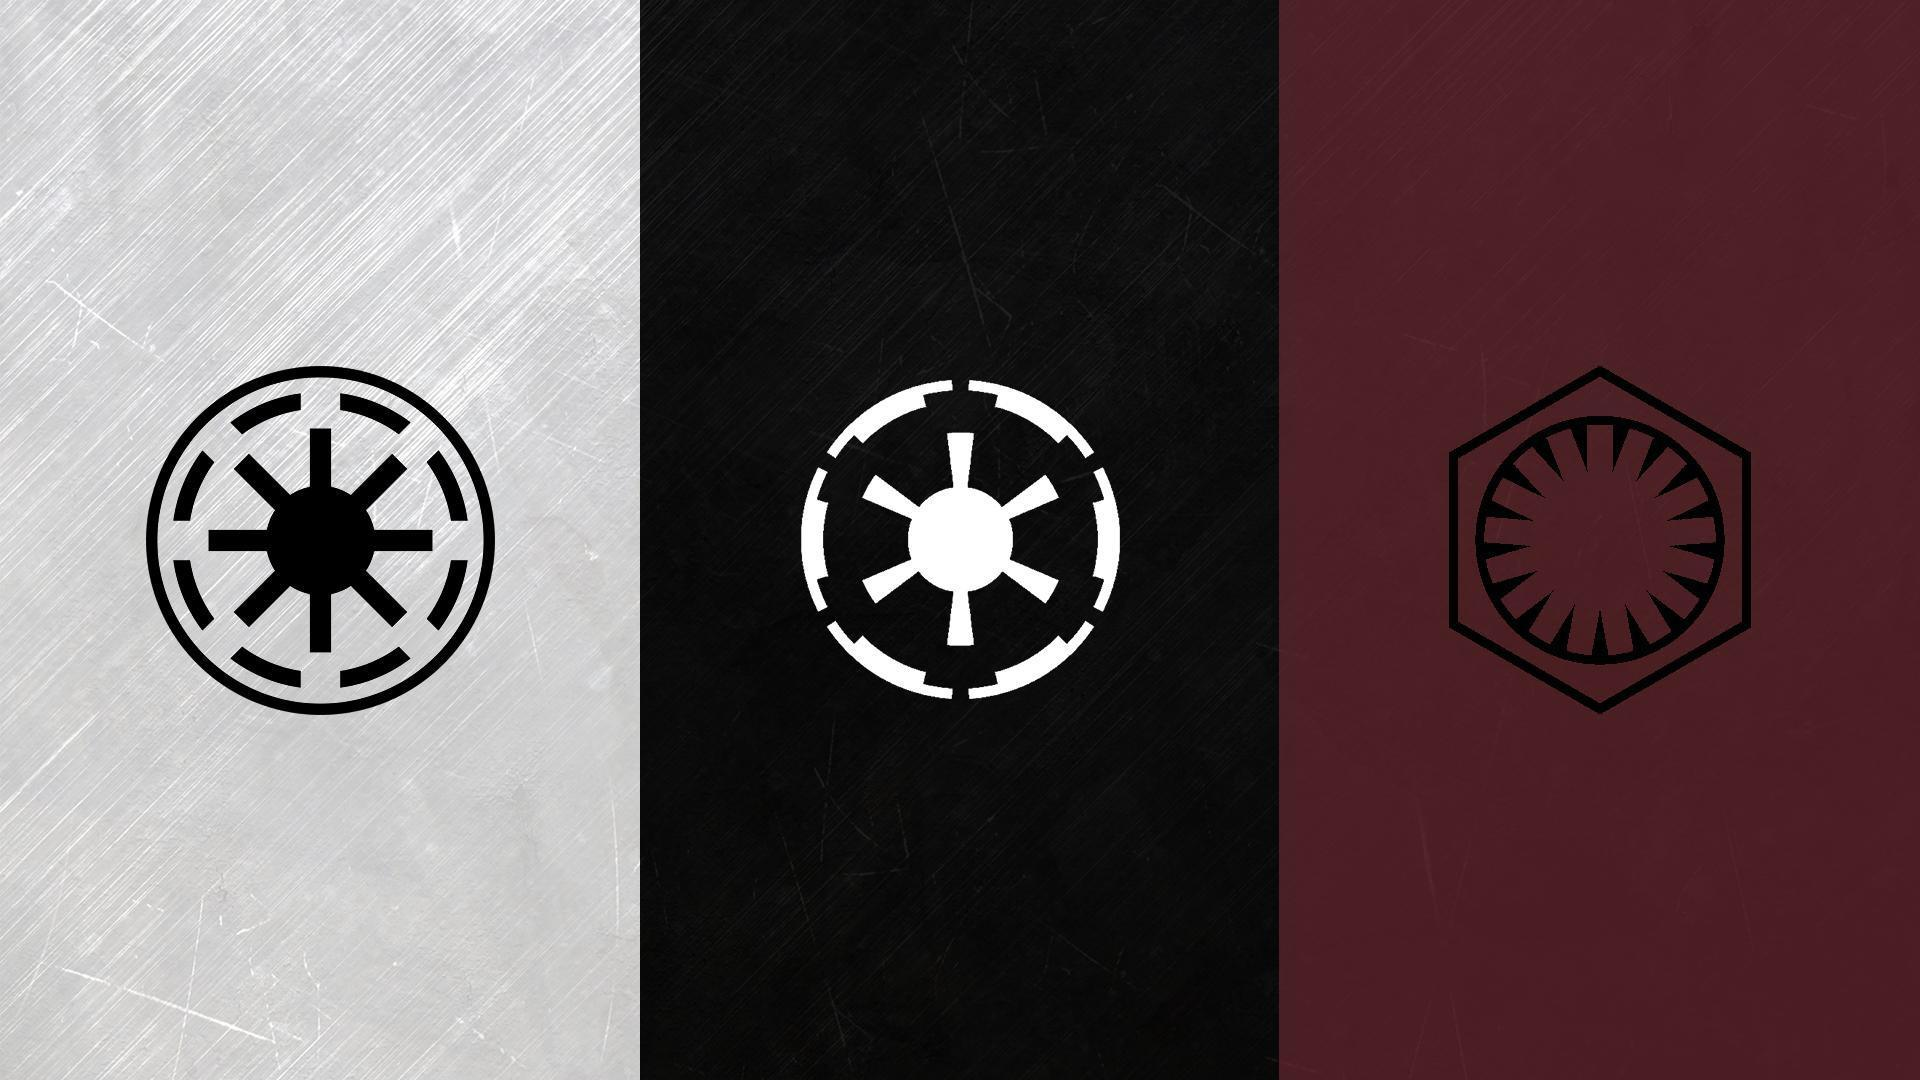 Galactic Republic Wallpapers Wallpaper Cave